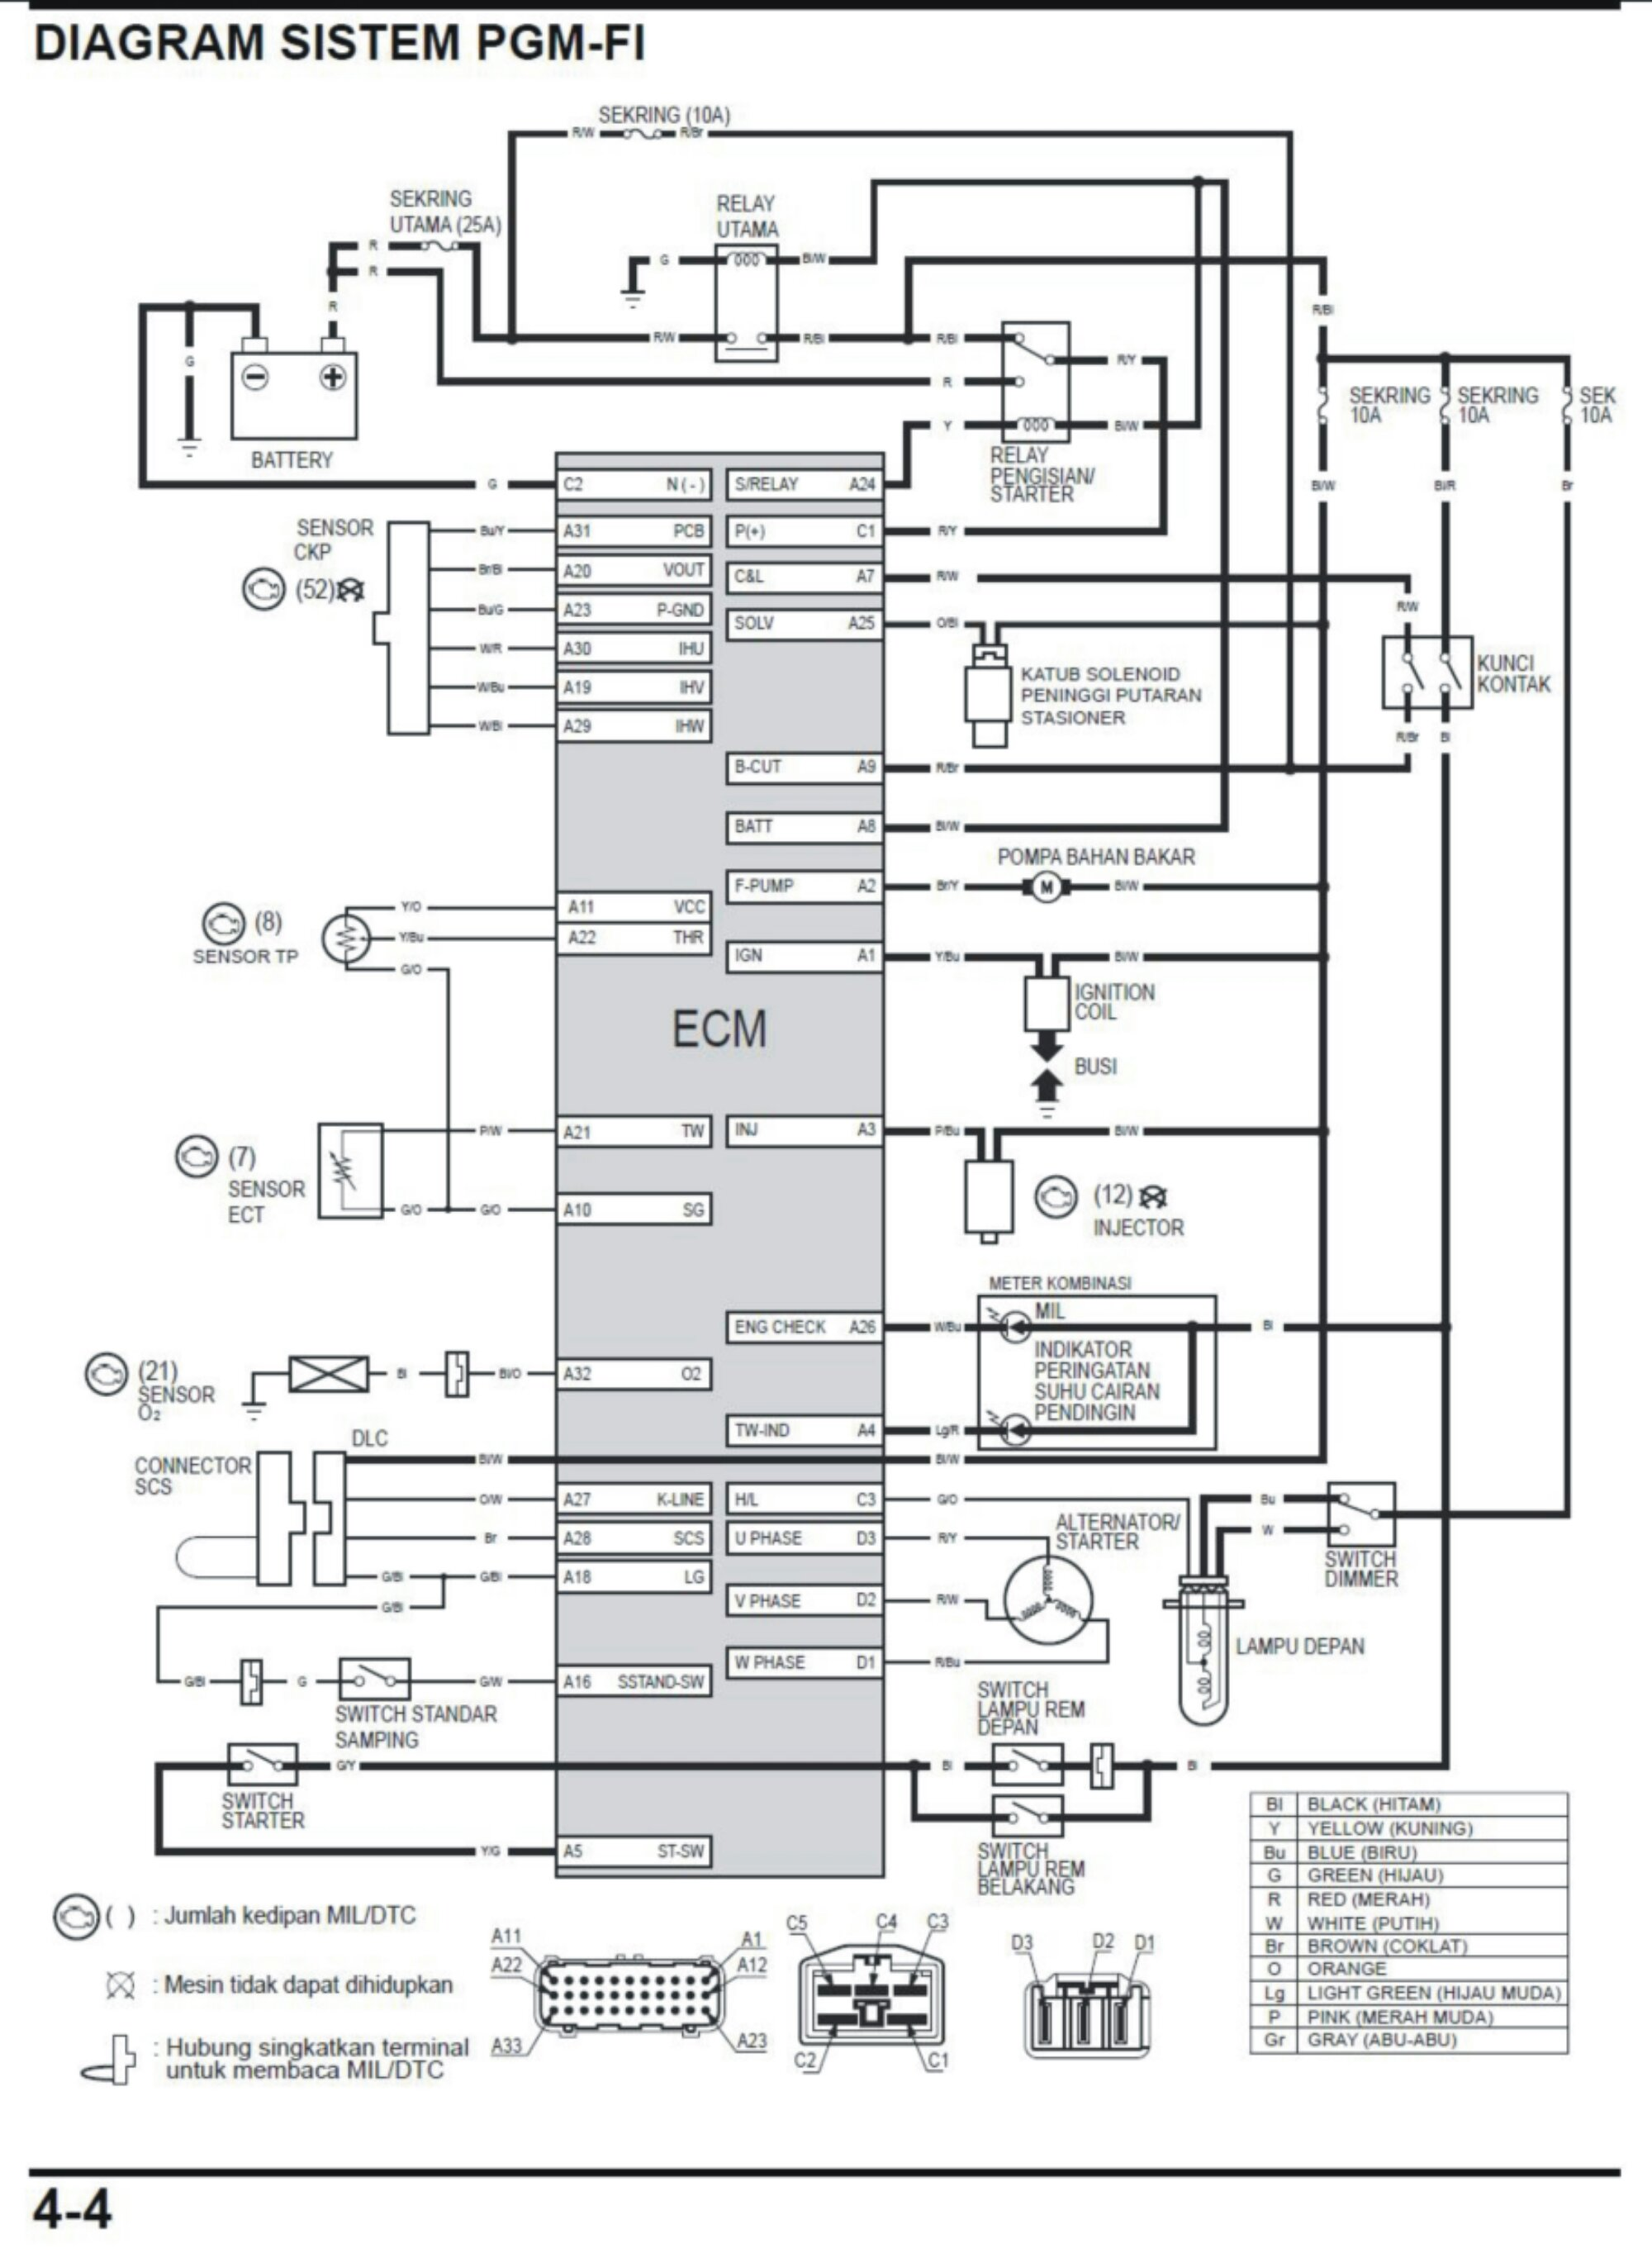 wiring diagram ecu 1kdftv auto electrical wiring diagram